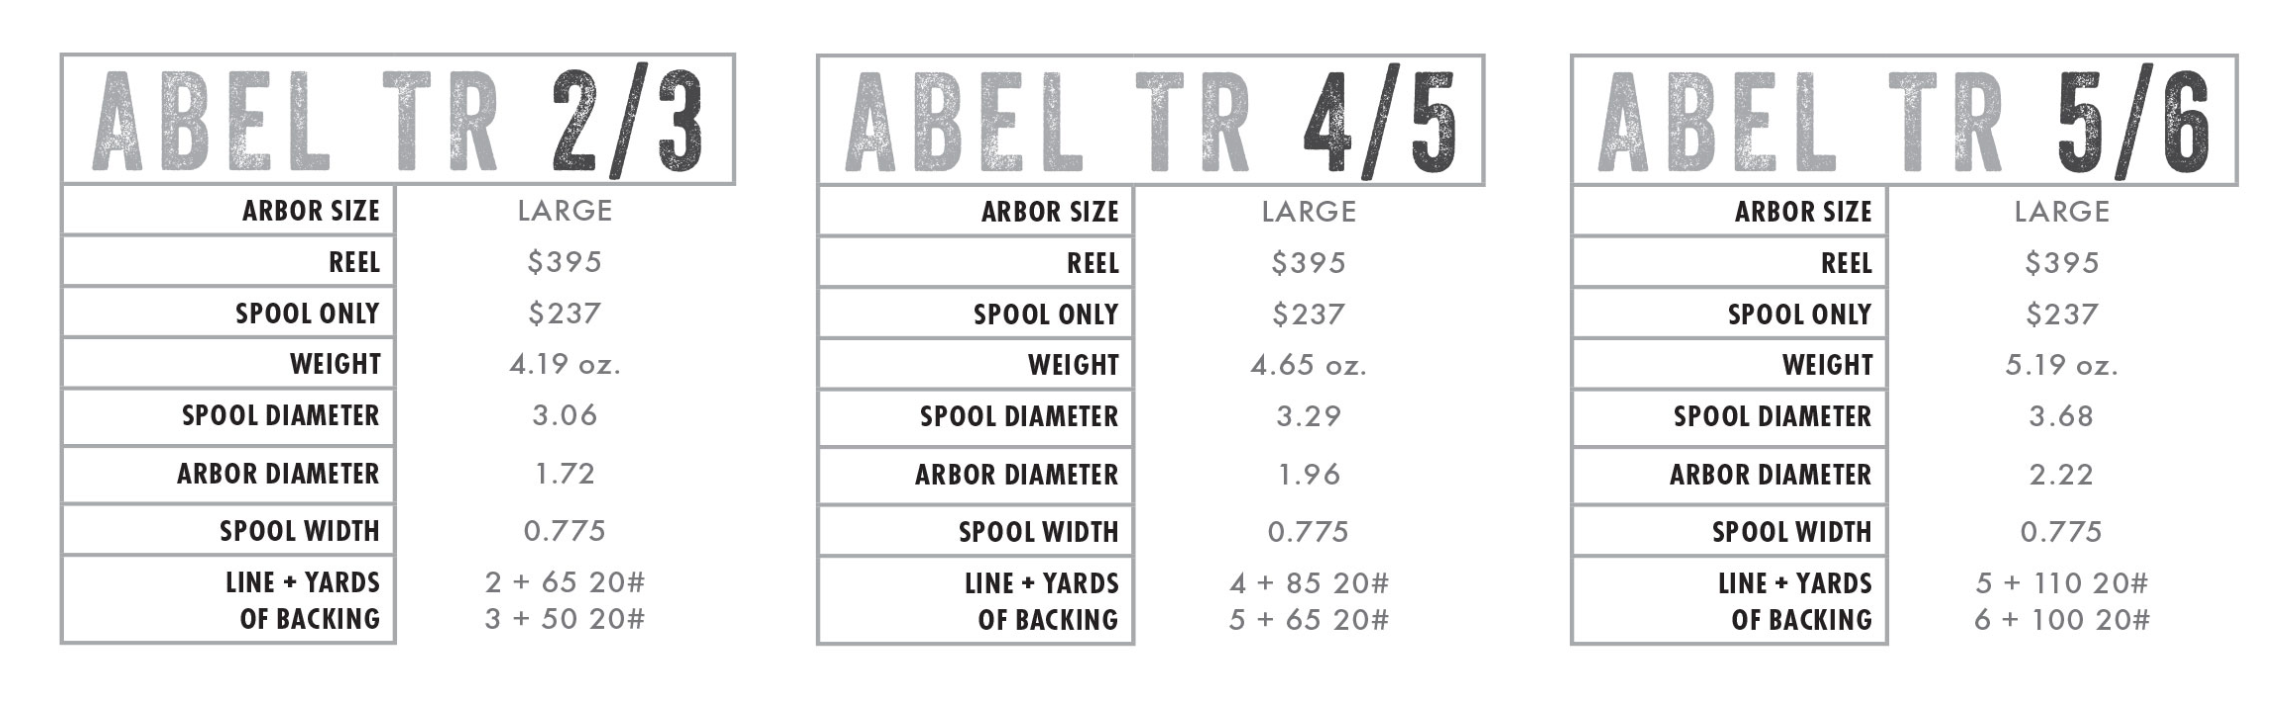 Abel TR Light Reel new for 2021